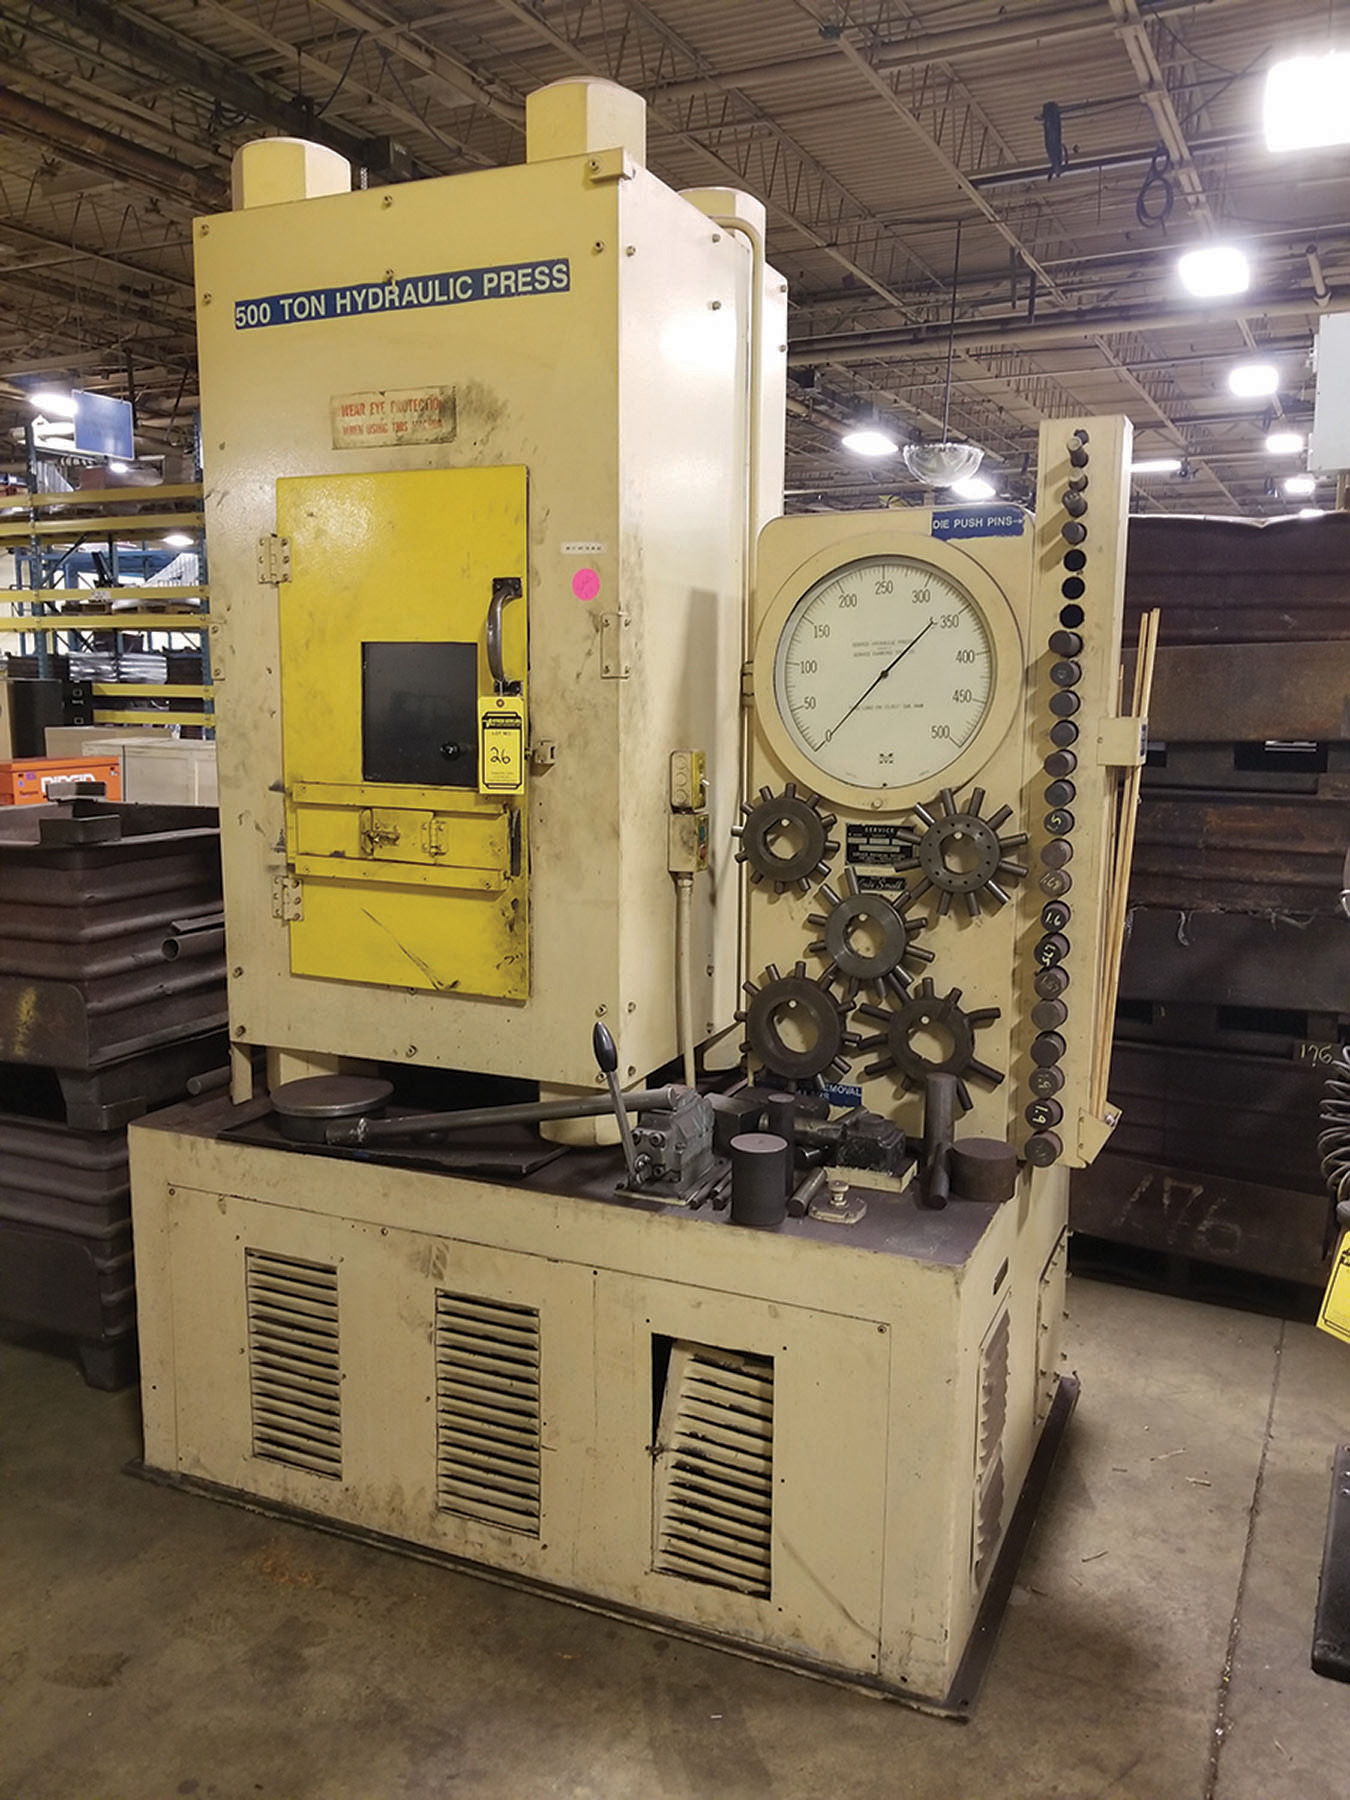 Lot 26 - SERVICE HYDRAULIC PRESSES CCTM 500-TON HYDRAULIC PRESS/ DIE ASSEMBLER, S/N 2630, 30'' X 18''